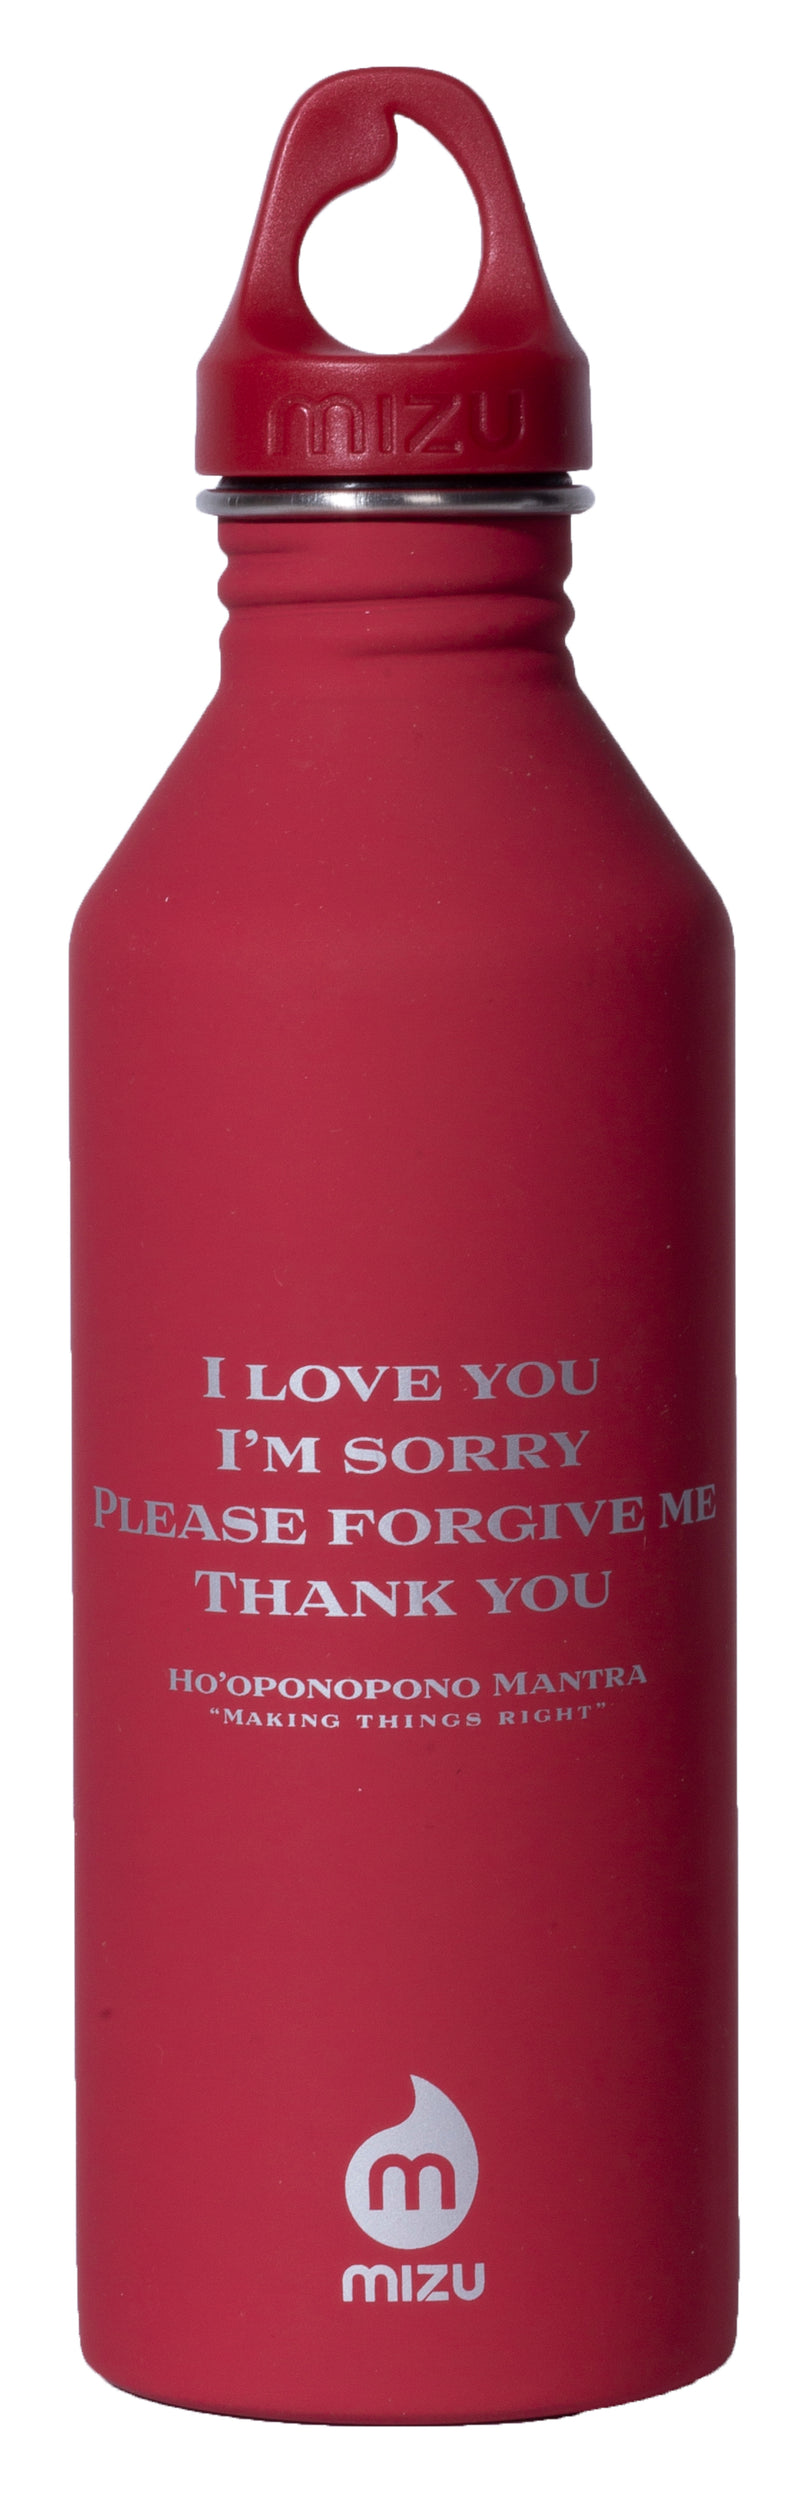 MIRARI® // Divine Warrior® Collection Water Bottle Red with Silver Label